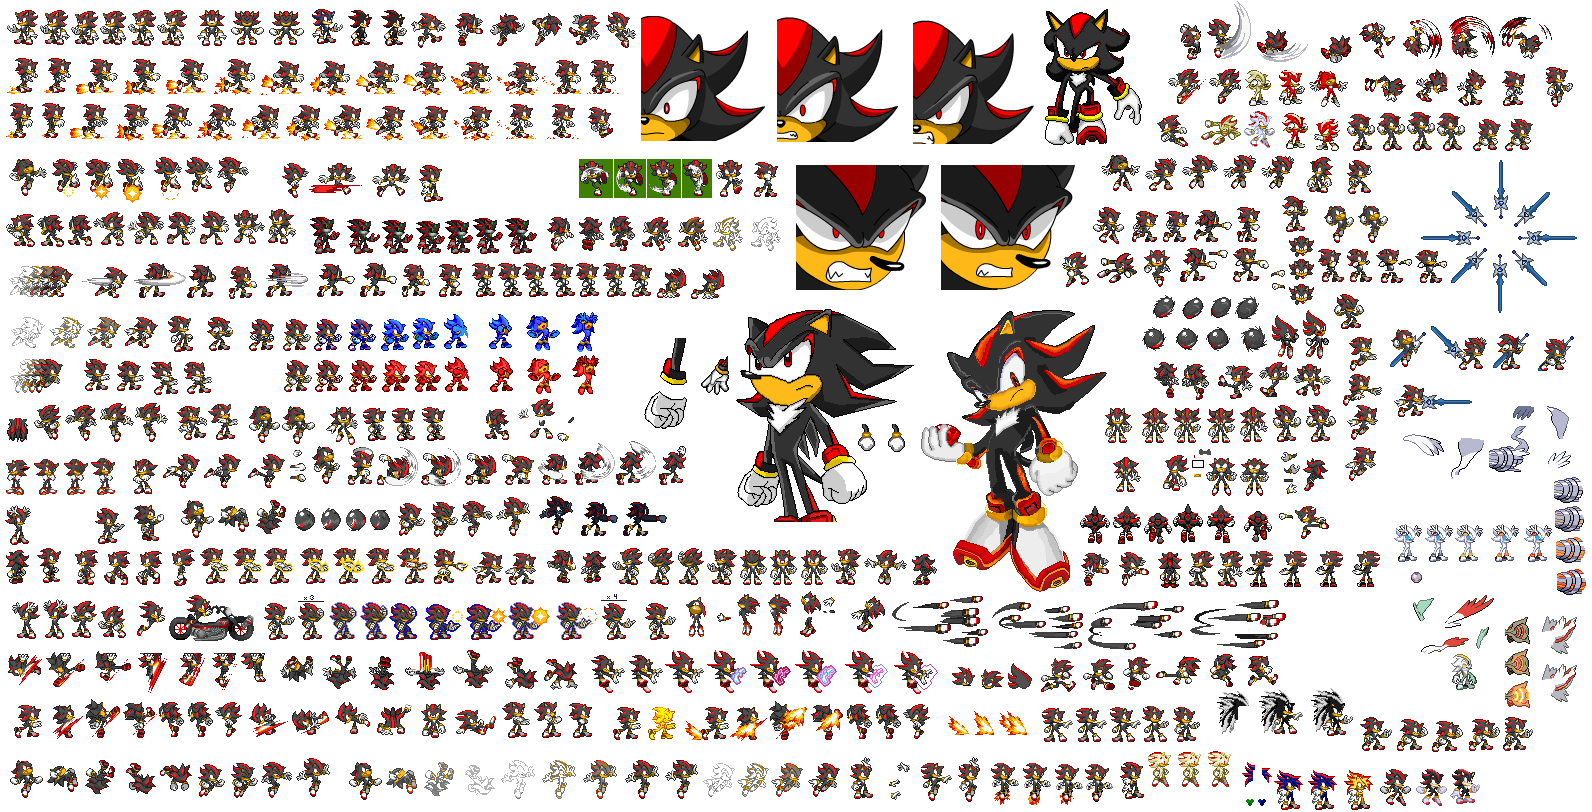 Shadow sprites by superdarkshadic